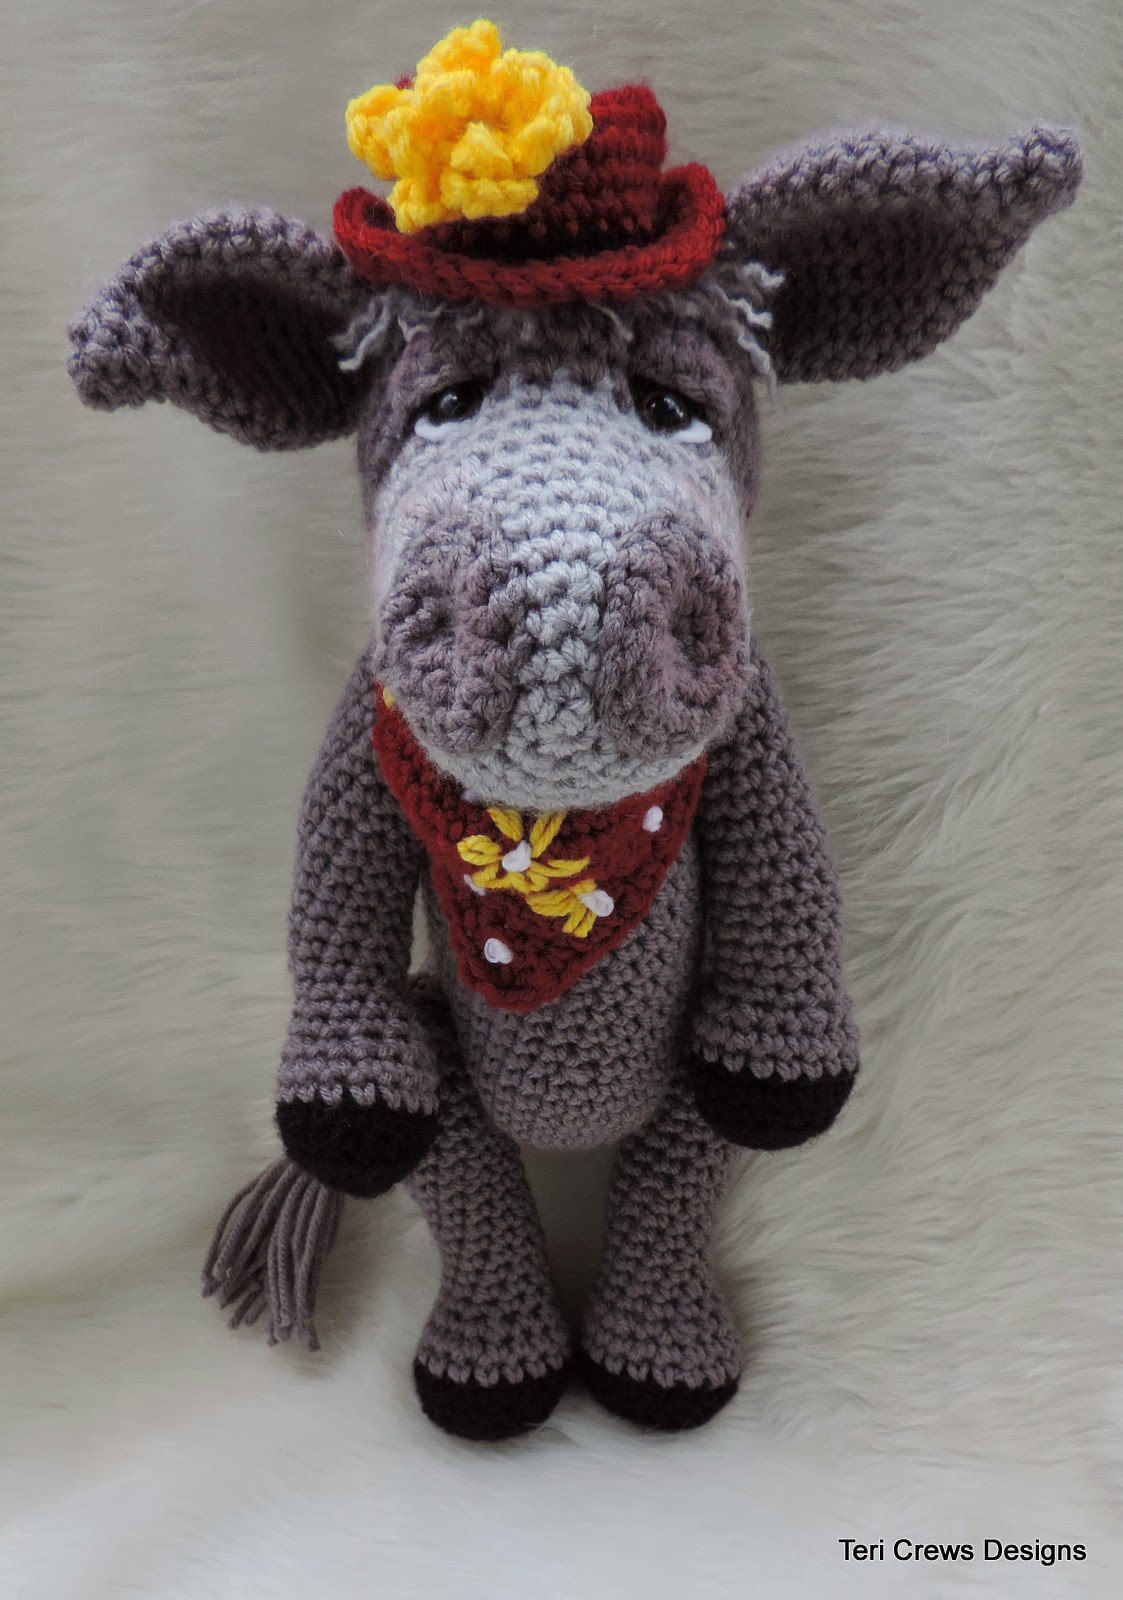 New Crochet Patterns Fresh Teri S Blog New Donkey Crochet Pattern Of Perfect 50 Ideas New Crochet Patterns